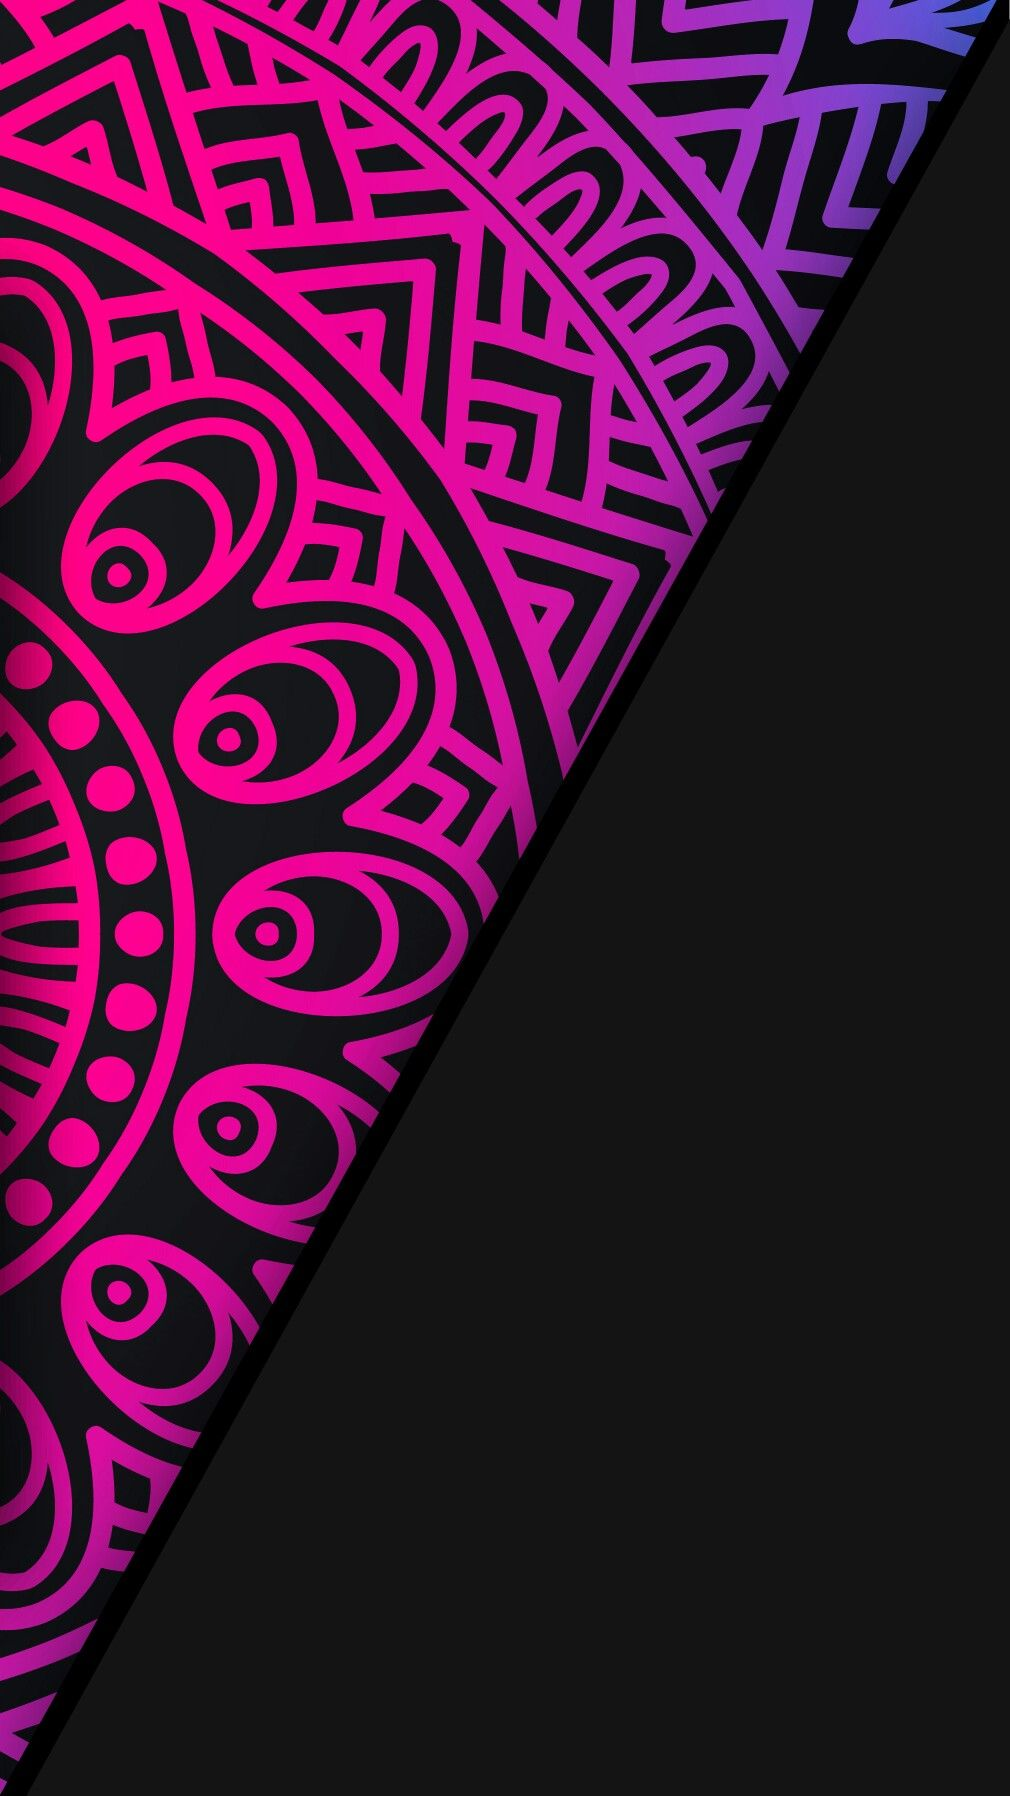 Black Neon Wallpaper Abstract